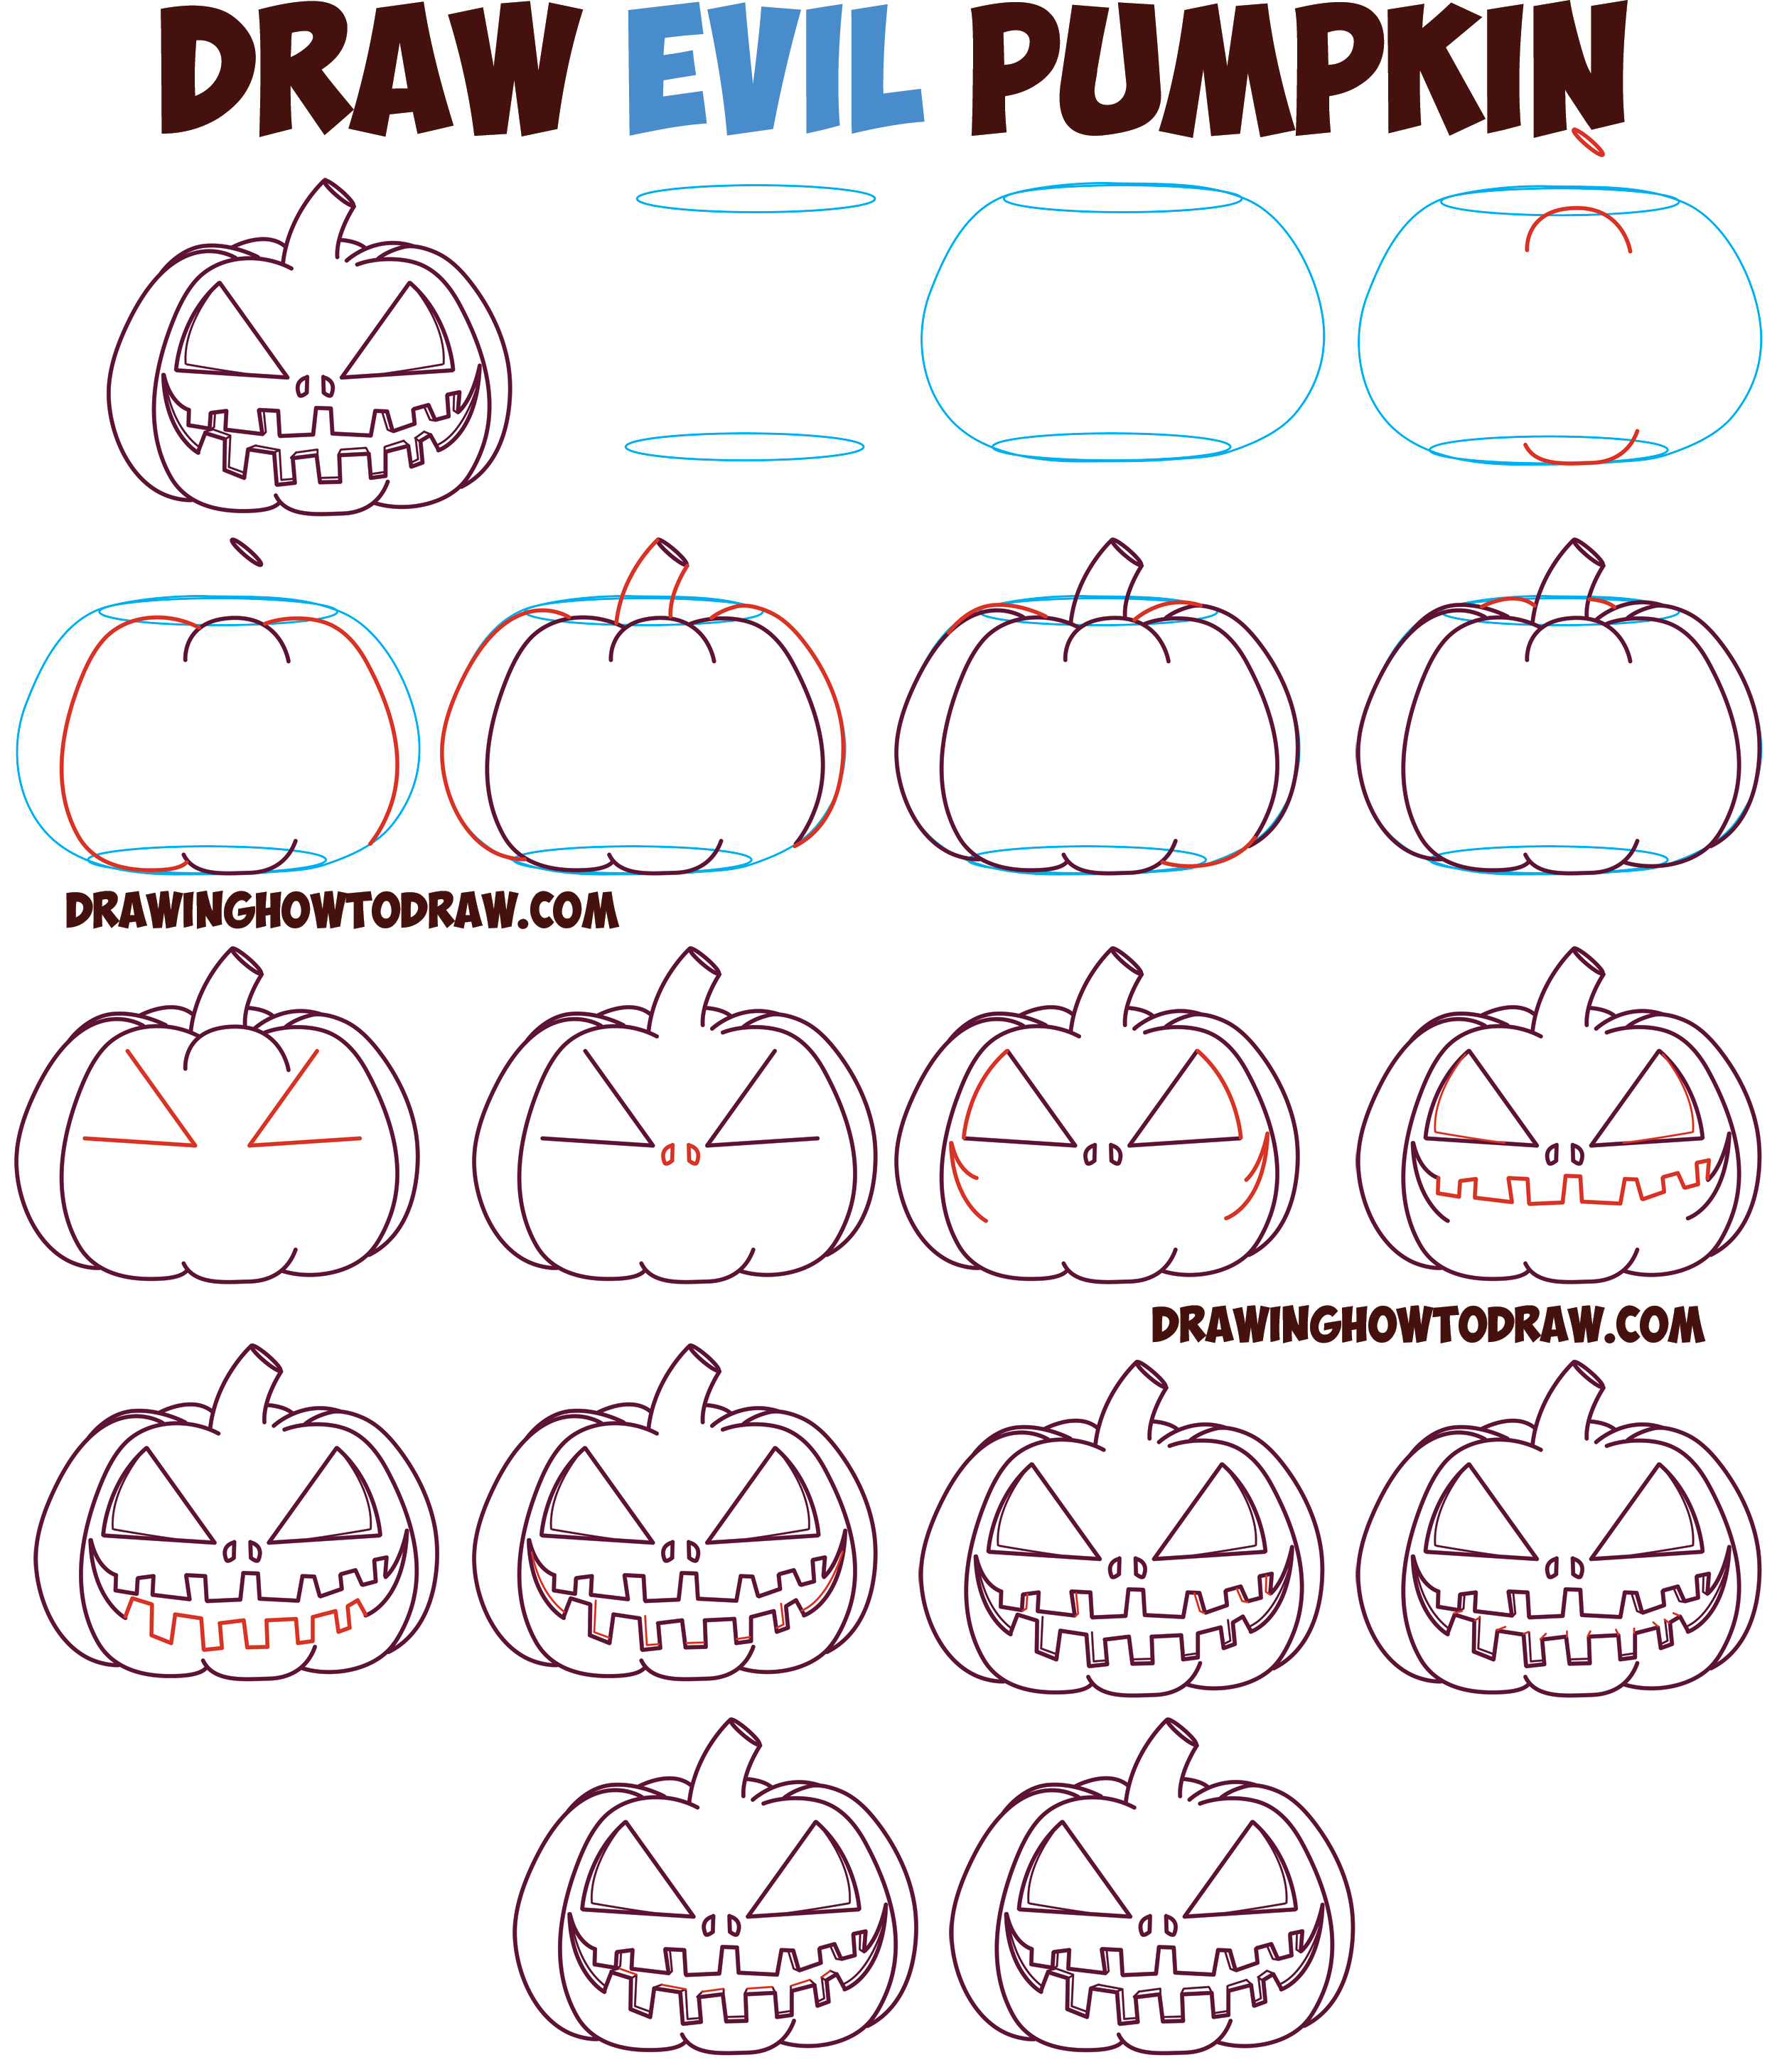 Uncategorized Pumpkins To Draw huge guide to drawing cartoon pumpkin faces jack olantern how draw evil angry zipper mouth